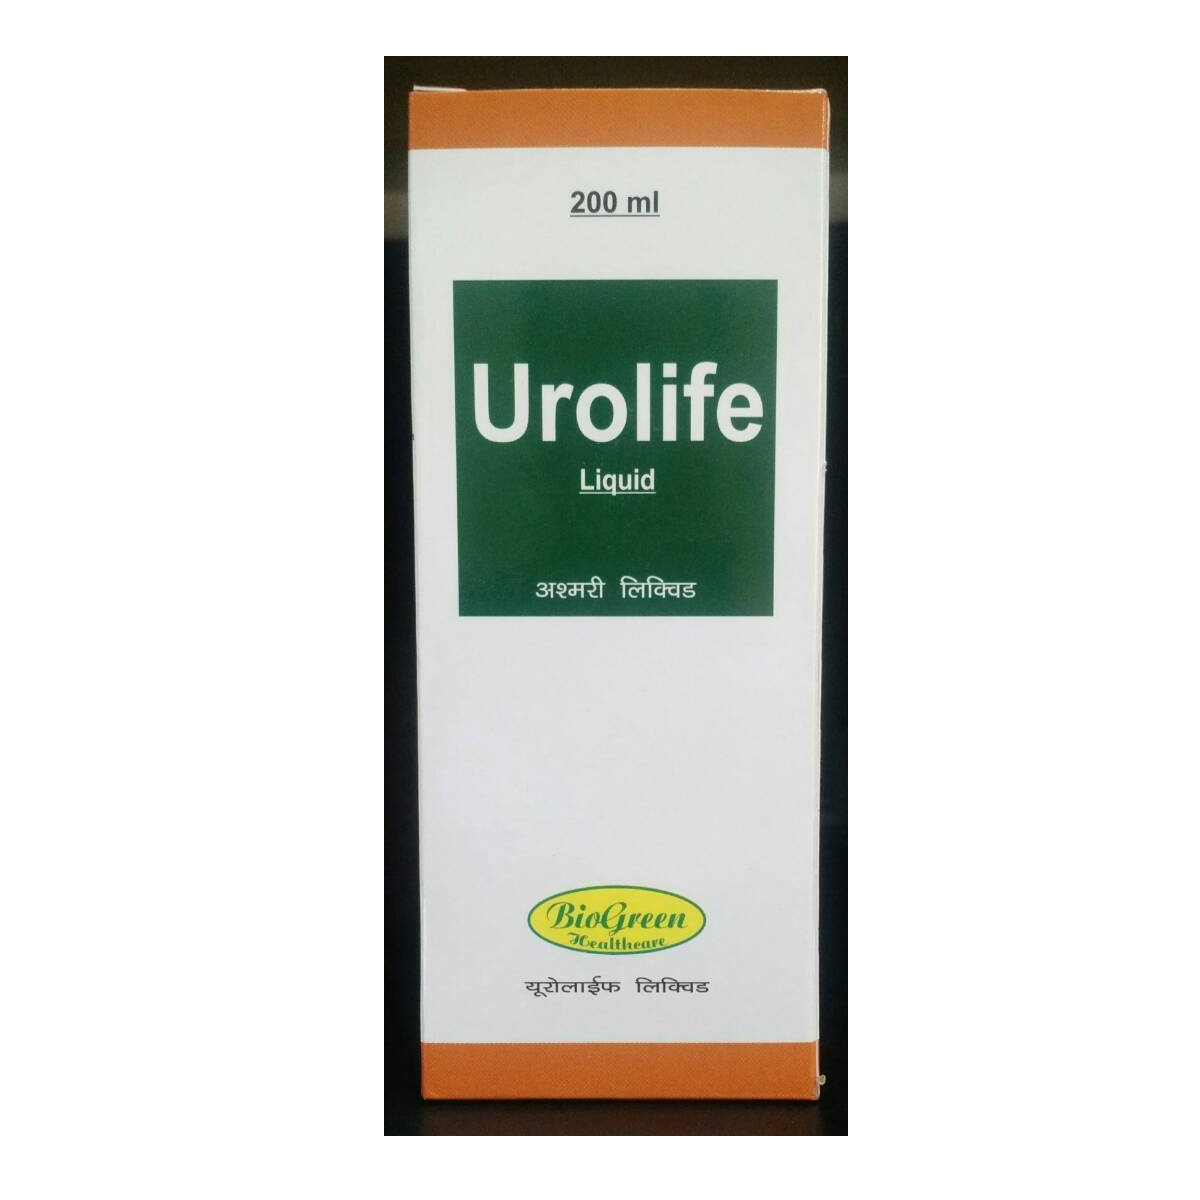 Urolife Liquid In Cuttack